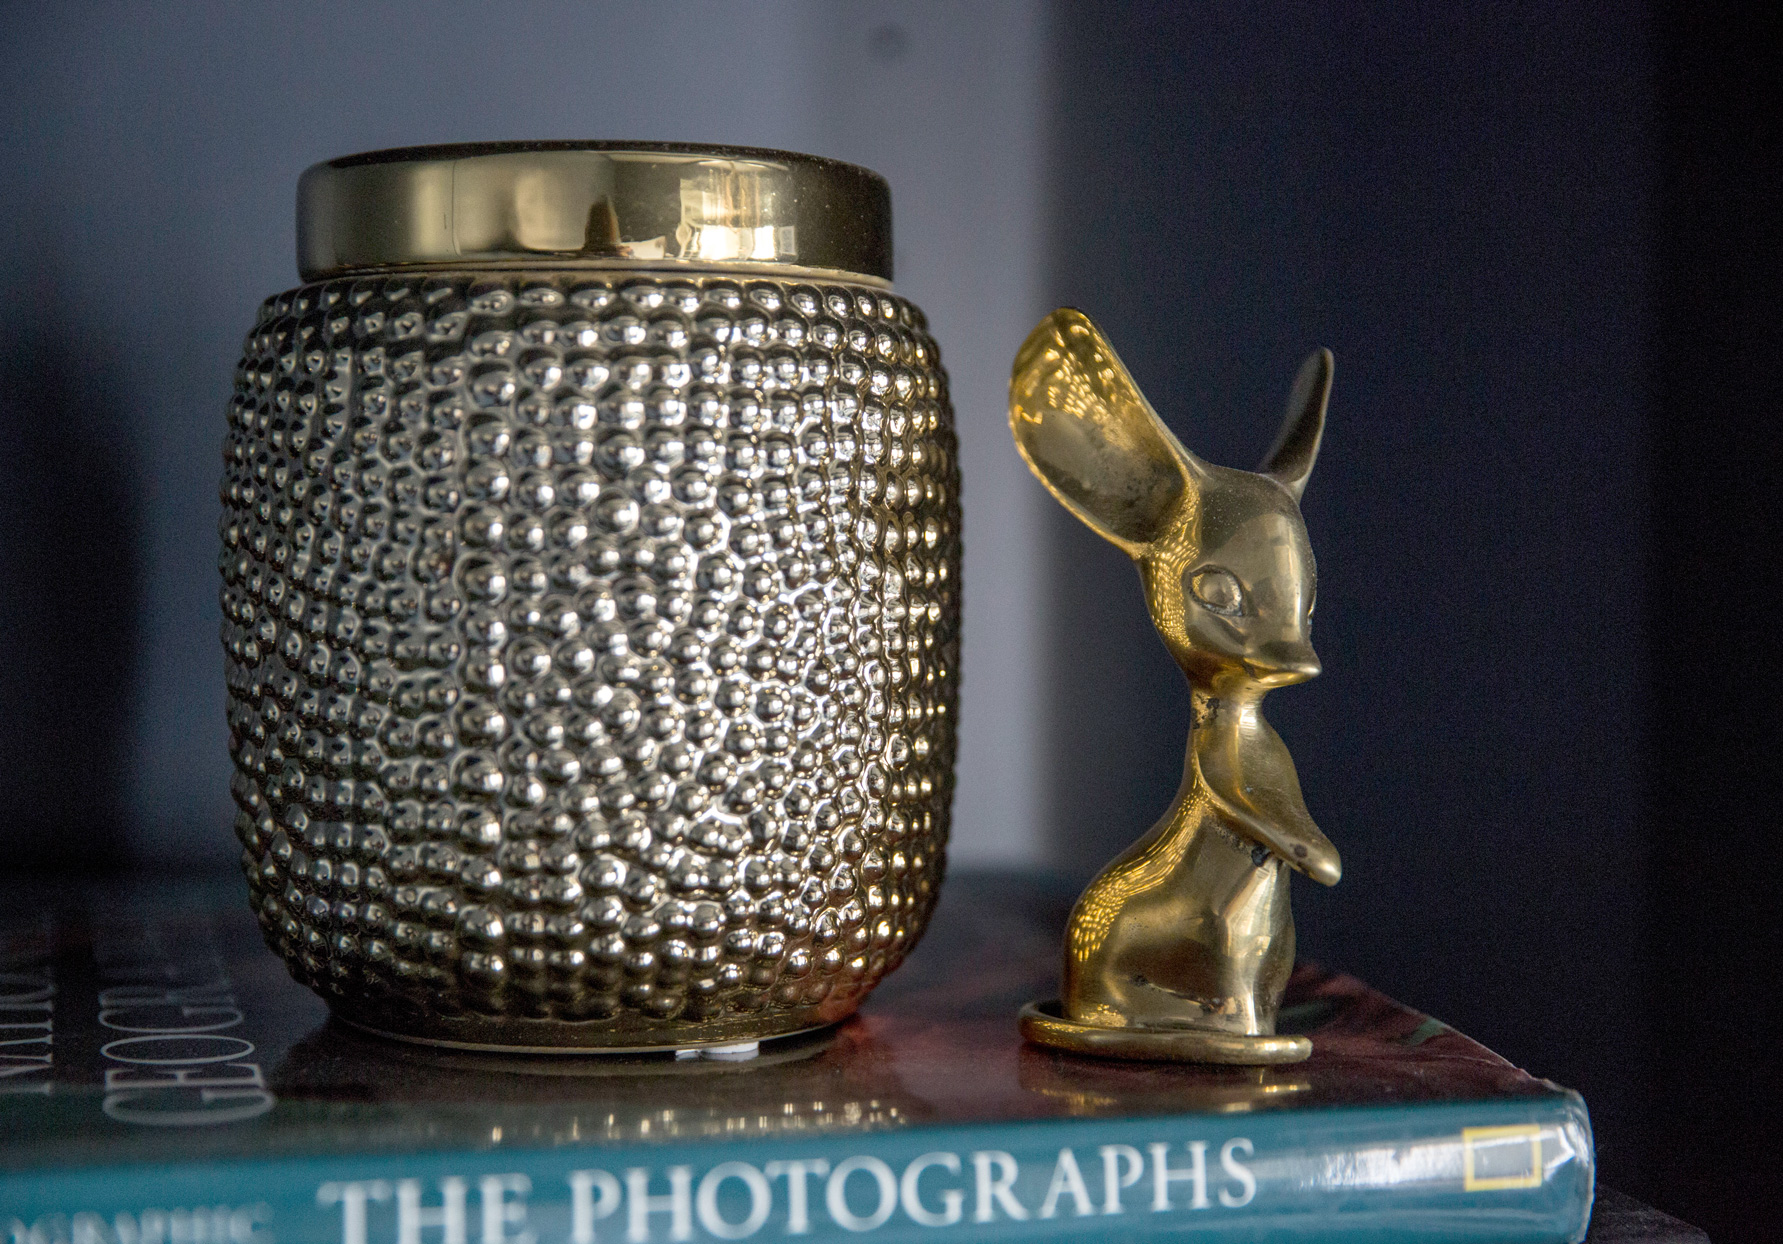 gold accent decor on book